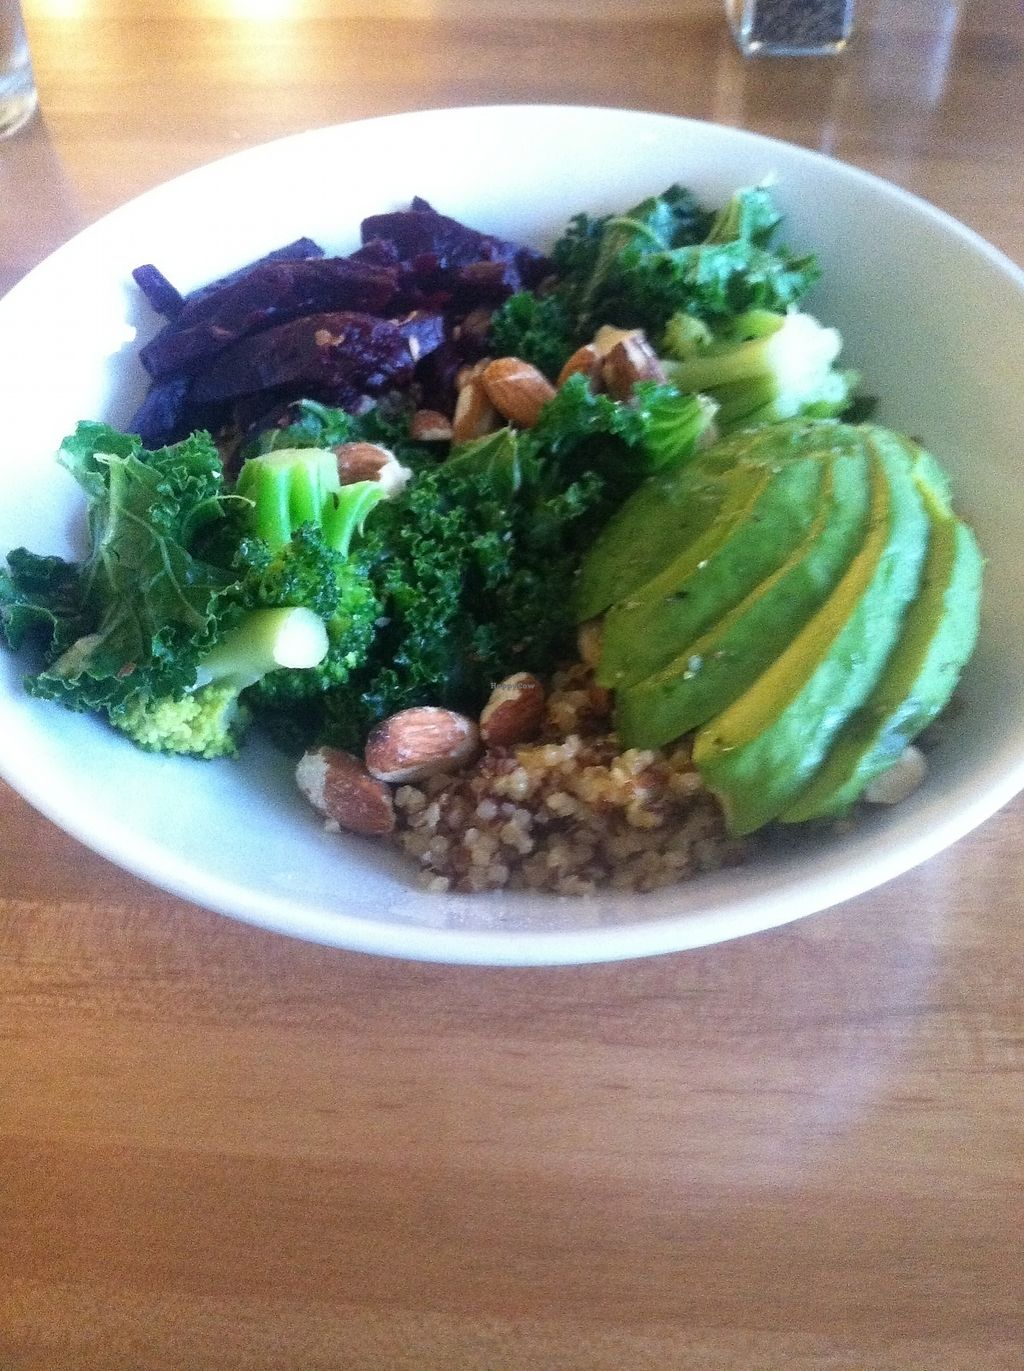 """Photo of Enjoy Pure Food + Drink  by <a href=""""/members/profile/KateKC"""">KateKC</a> <br/>Take on the World Bowl - Quinoa, avocado, kale, broccoli, shredded beets, almonds, hemp seeds, ginger-miso dressing <br/> March 4, 2018  - <a href='/contact/abuse/image/80758/366444'>Report</a>"""